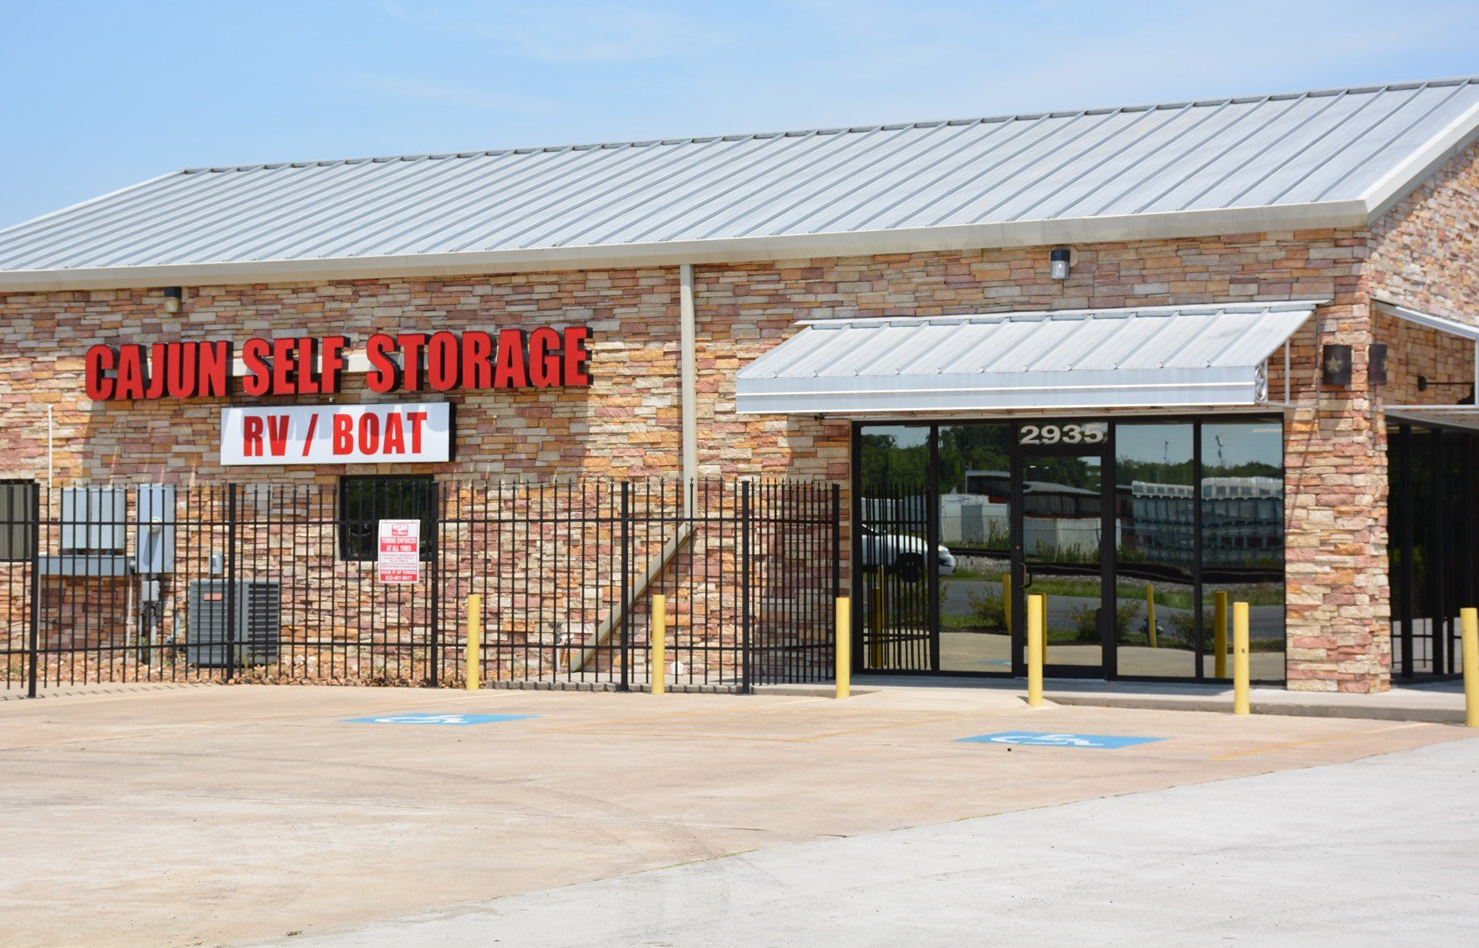 Cajun Self Storage Office Exterior